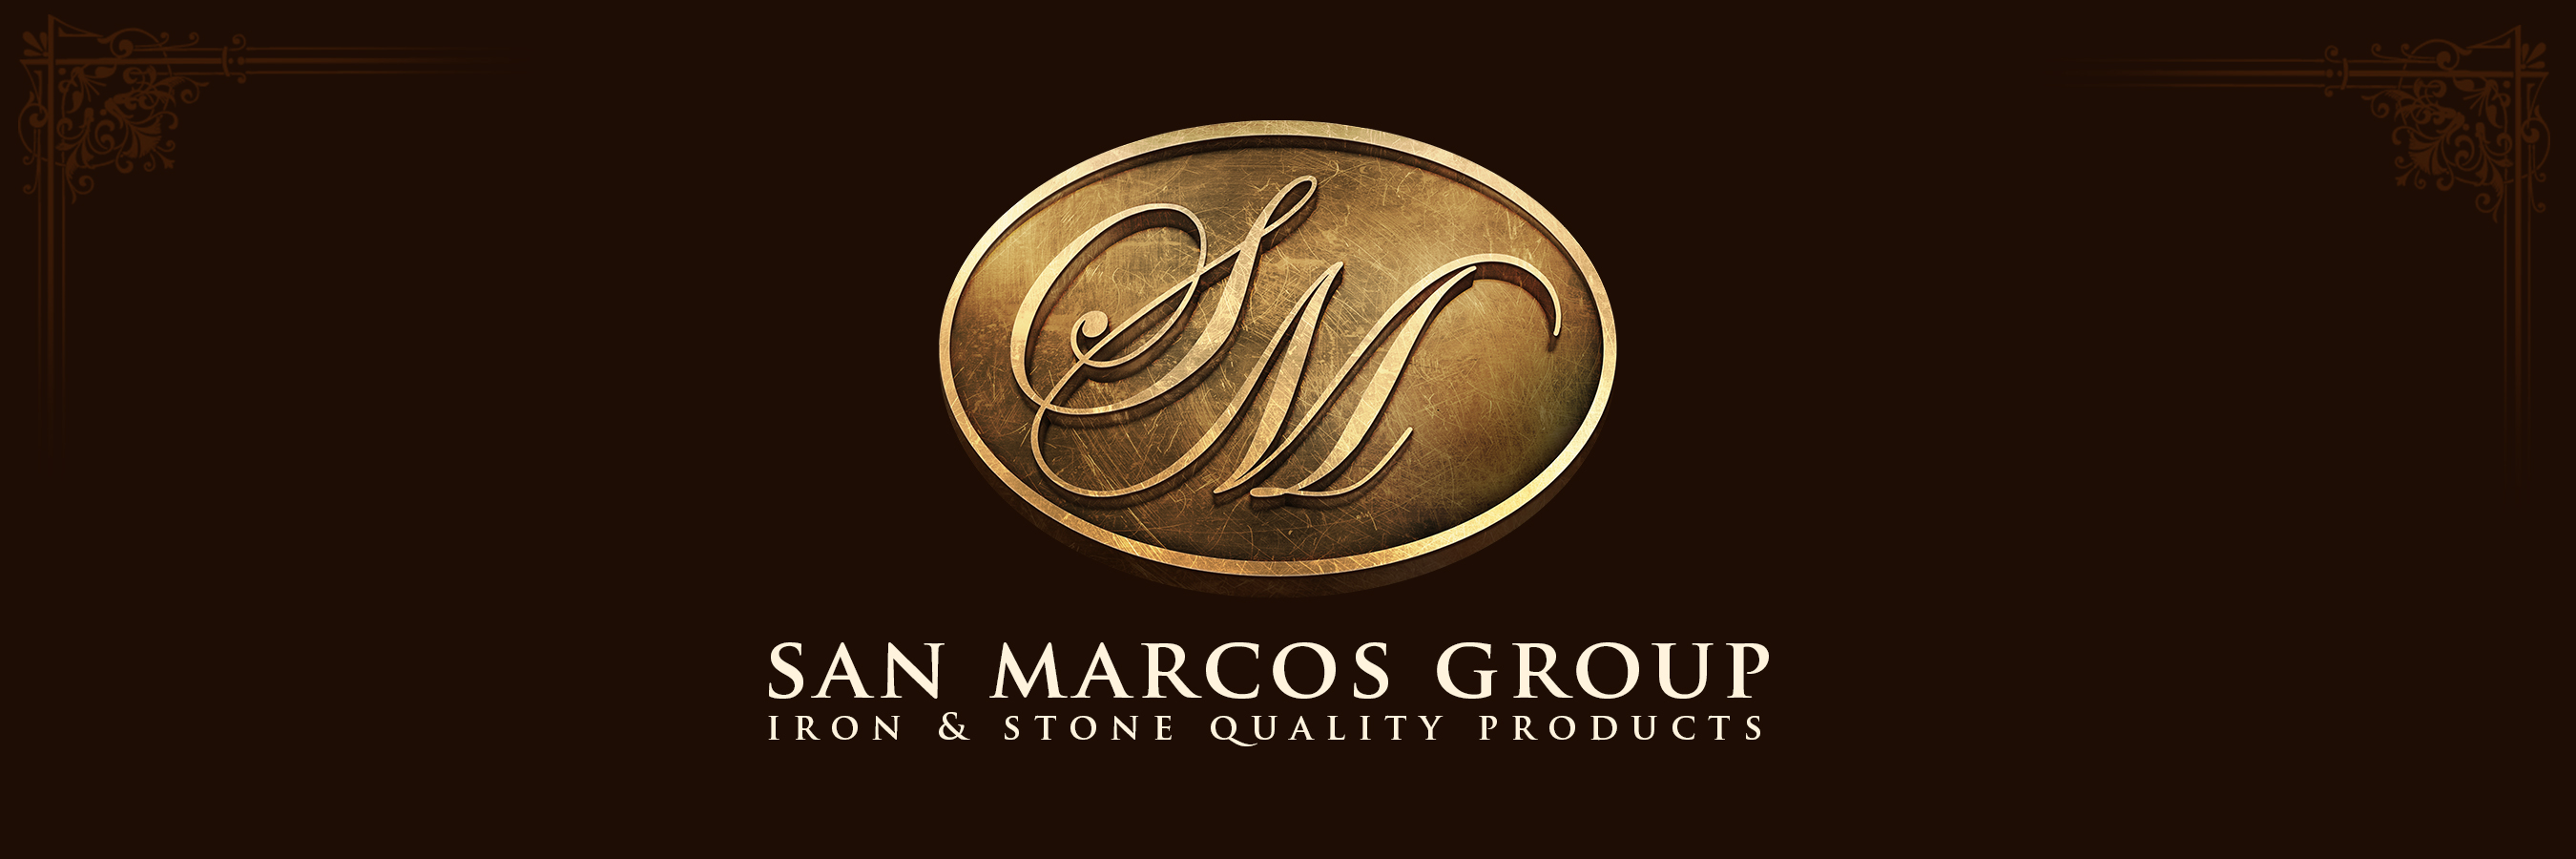 San Marcos Group